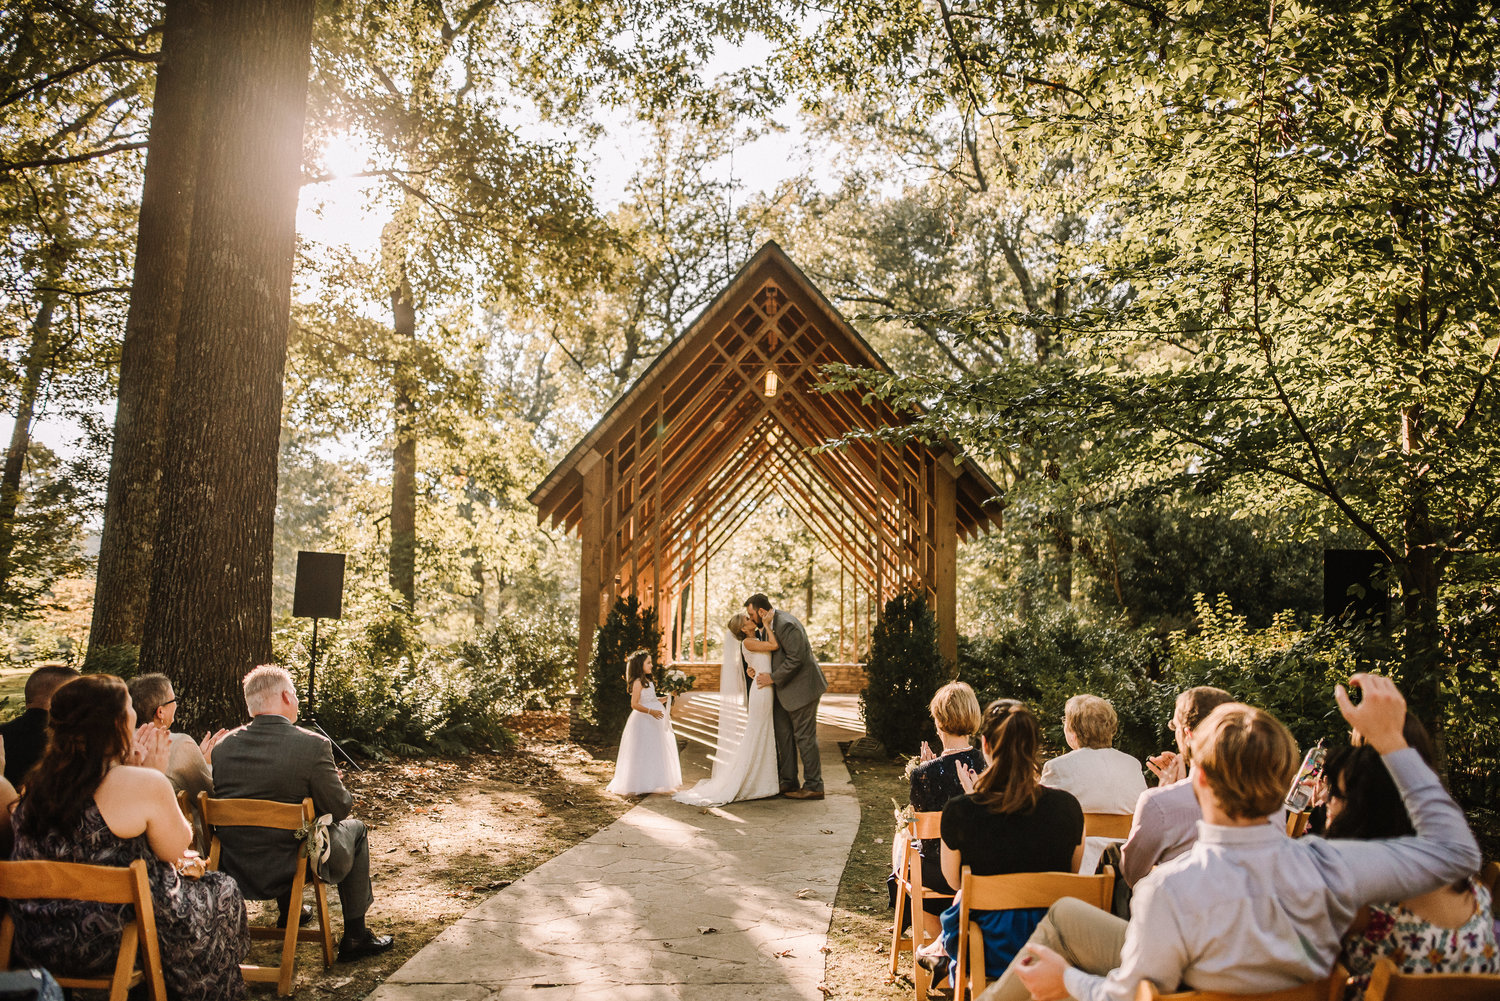 Stories ashley benham photography memphis wedding photographer noteworthy memphis tennessee wedding venues memphis tennessee wedding photographer junglespirit Image collections